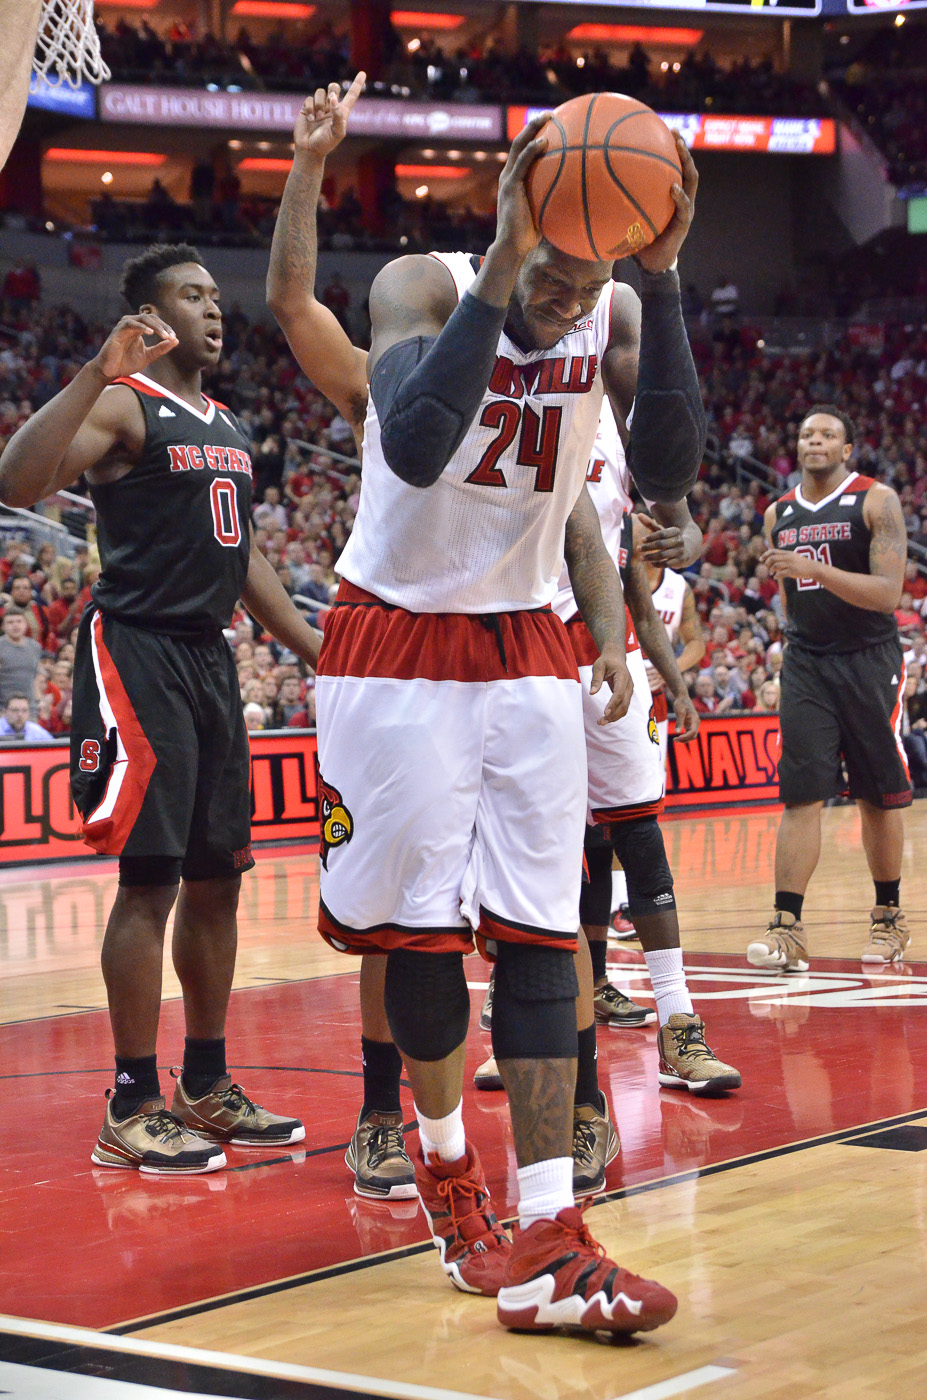 Harrell gets frustrated against NC State